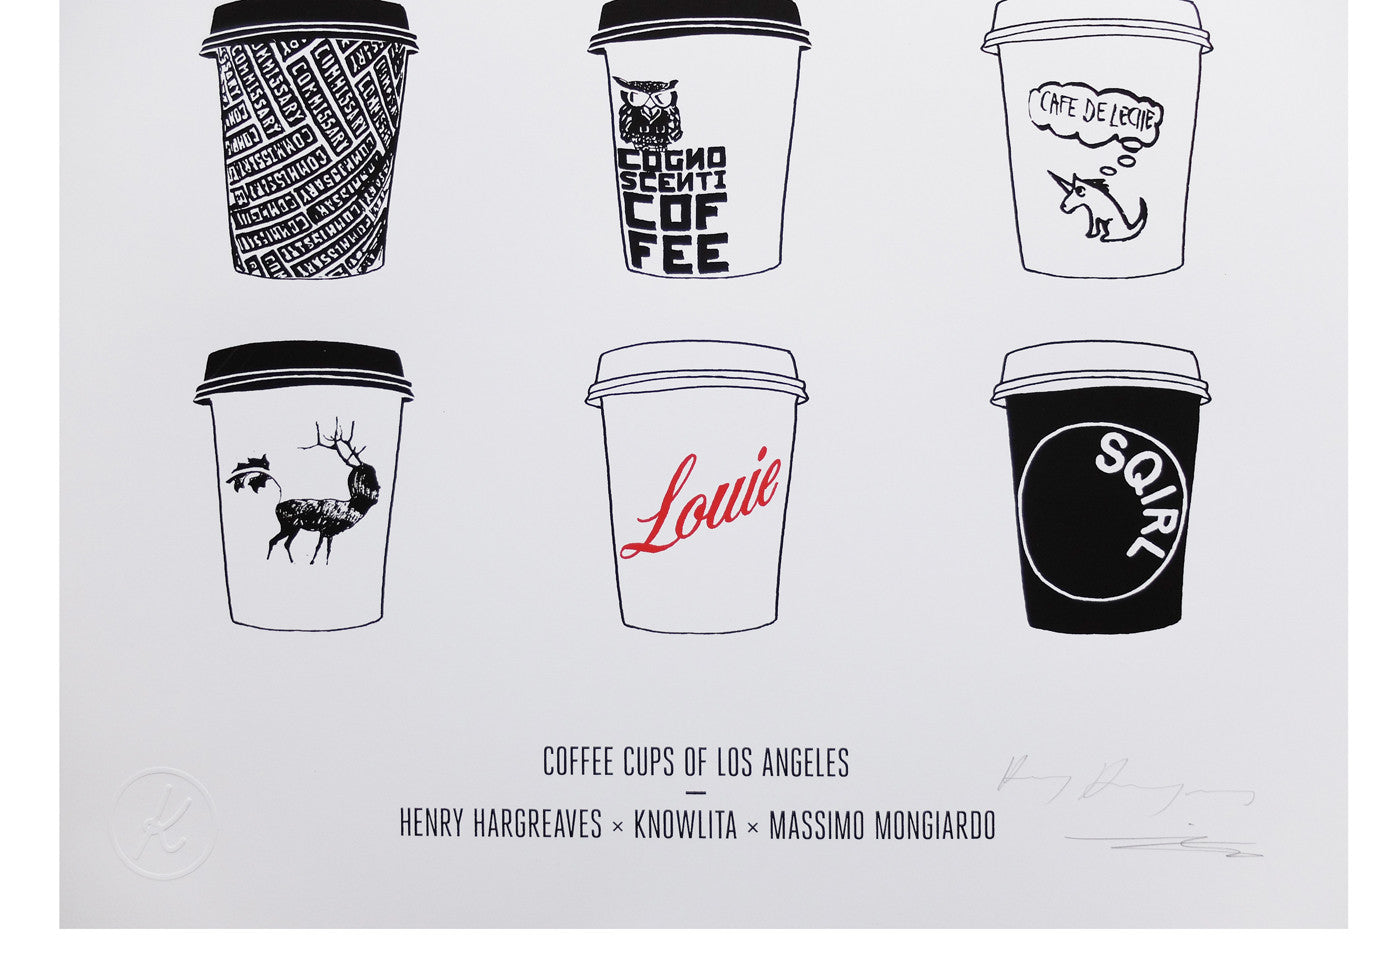 Coffee Cups of Los Angeles